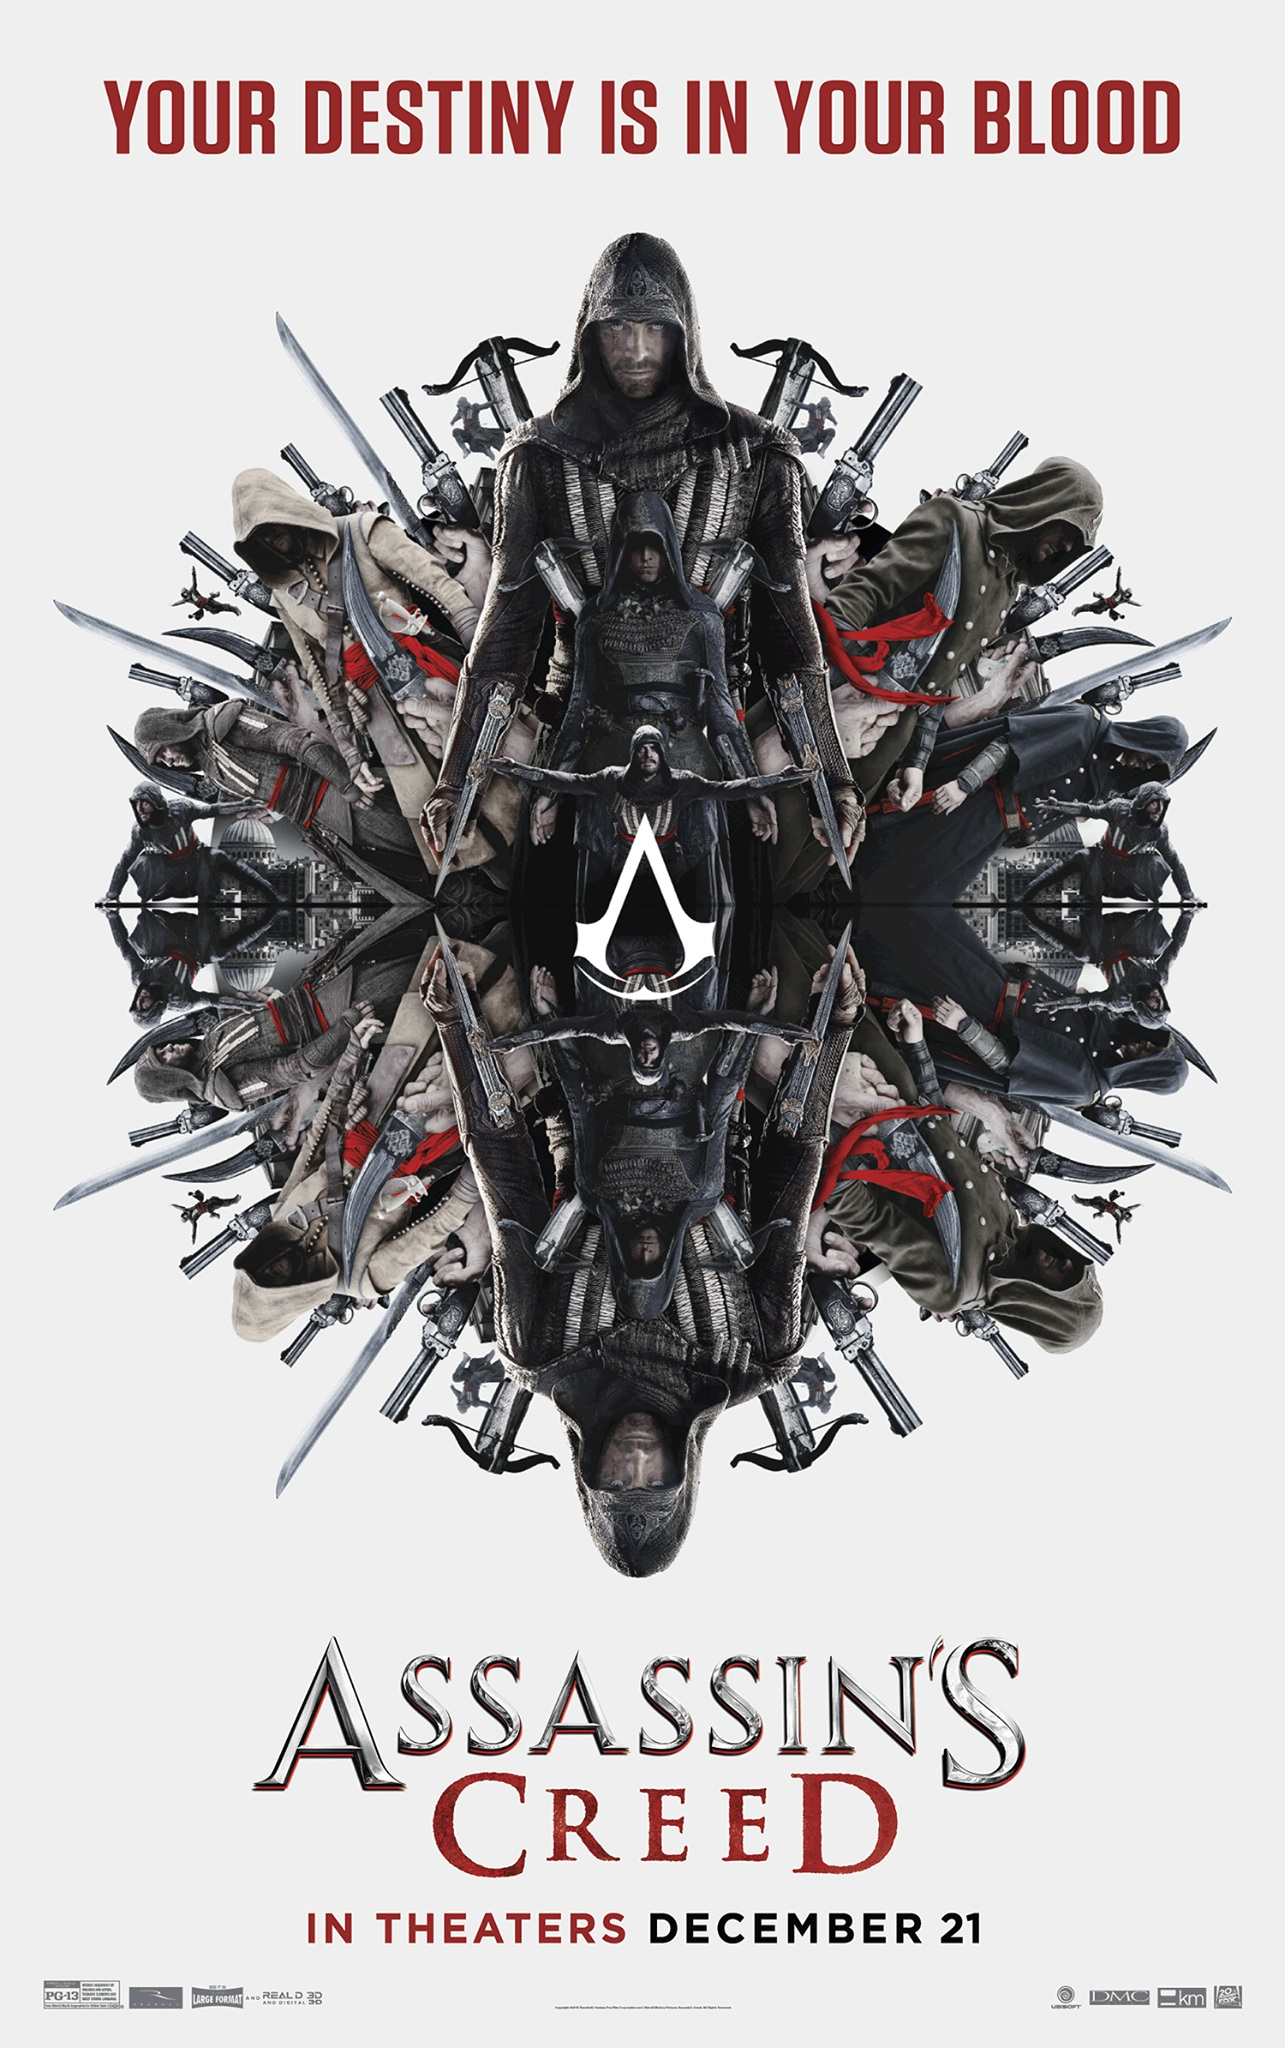 Recently released poster for Assassin's Creed